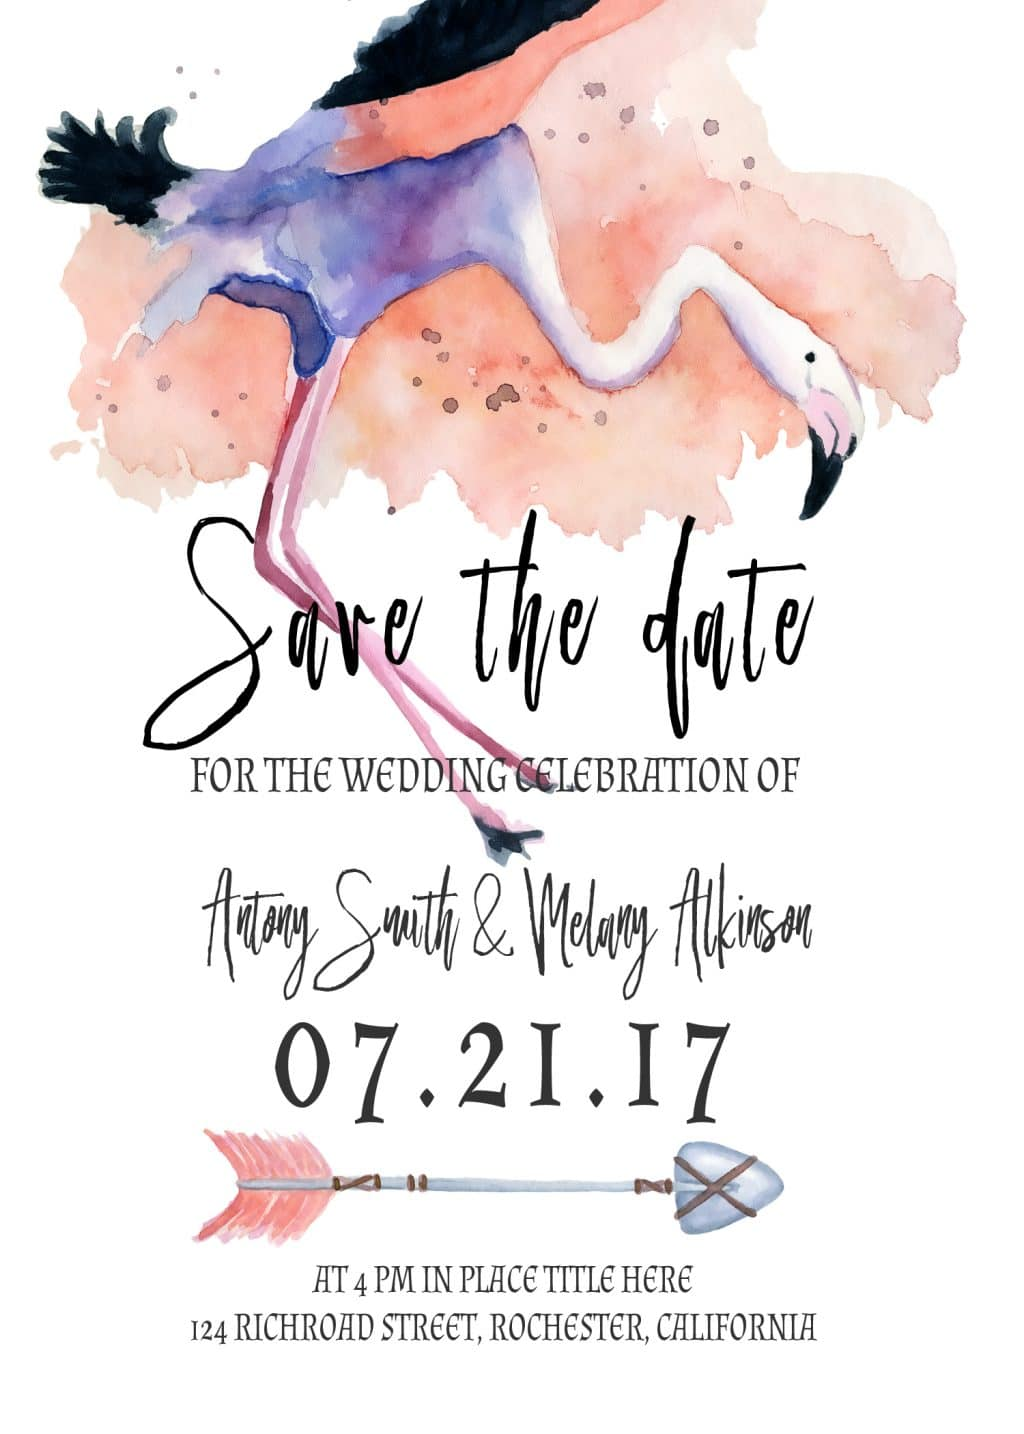 The Best Save the Date Cards